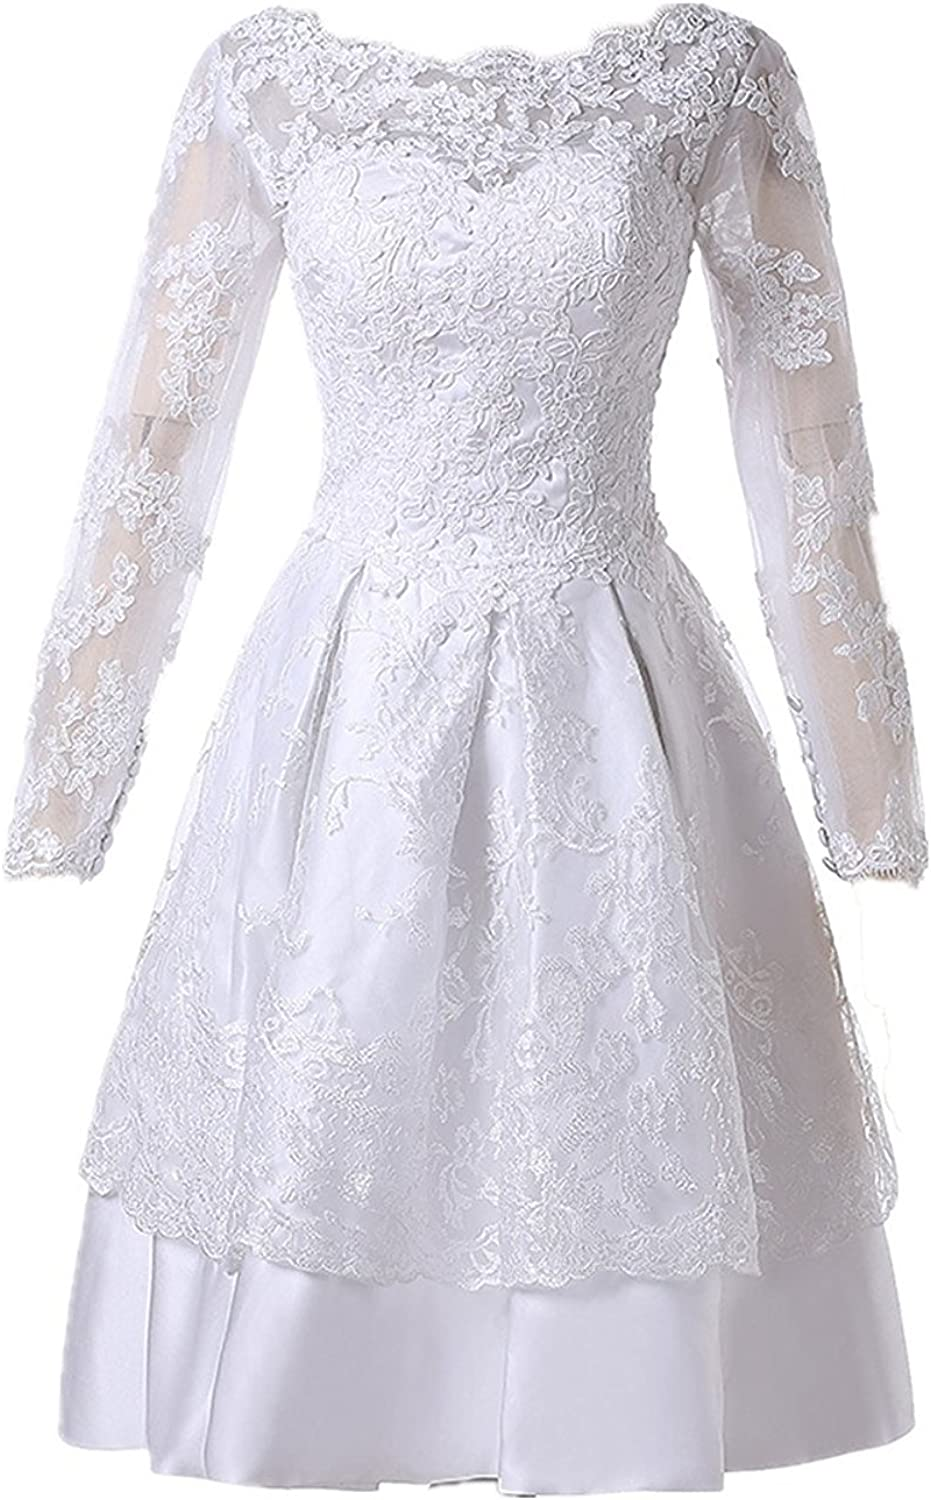 QY Bride Wedding Party Dresses Lace Bridal Gala Bridesmaid Gowns with Sleeve